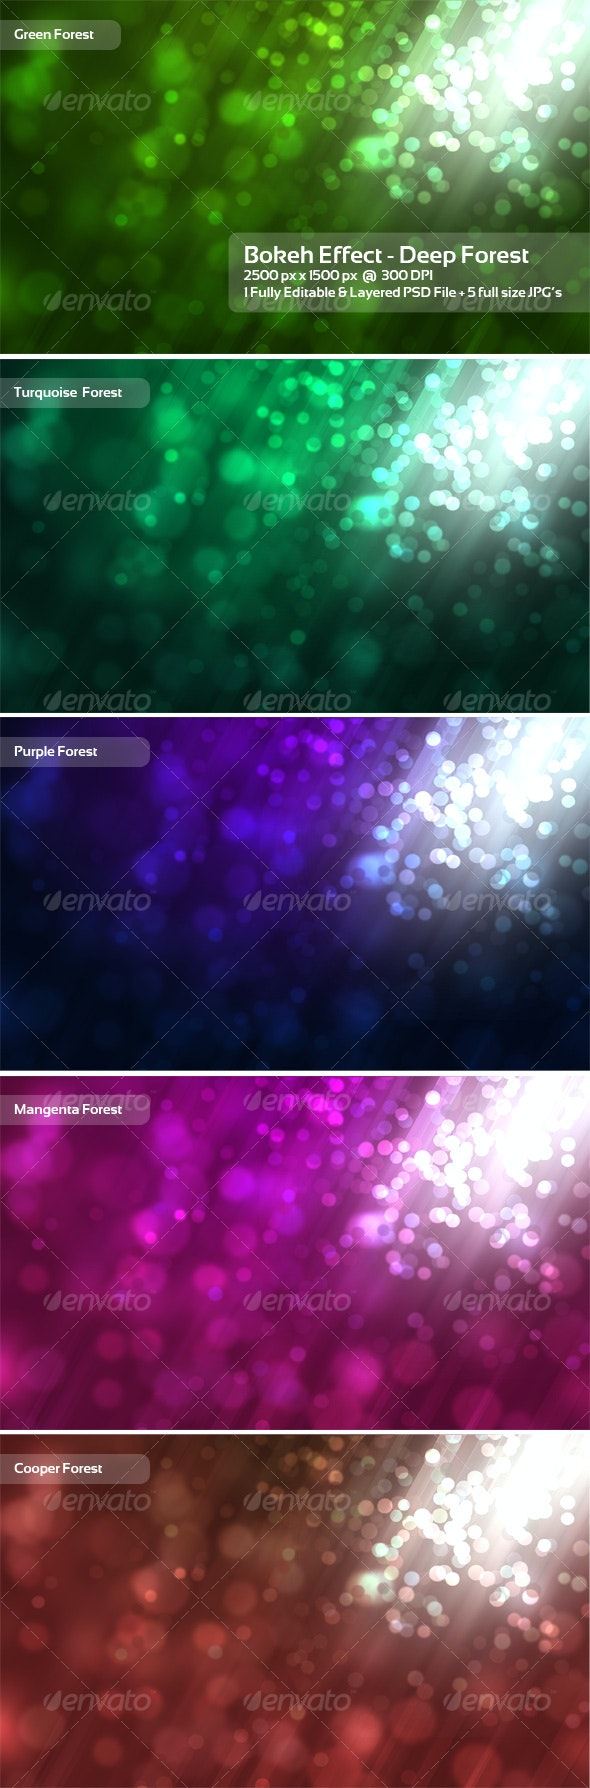 Bokeh Effect - Deep Forest - Backgrounds Graphics